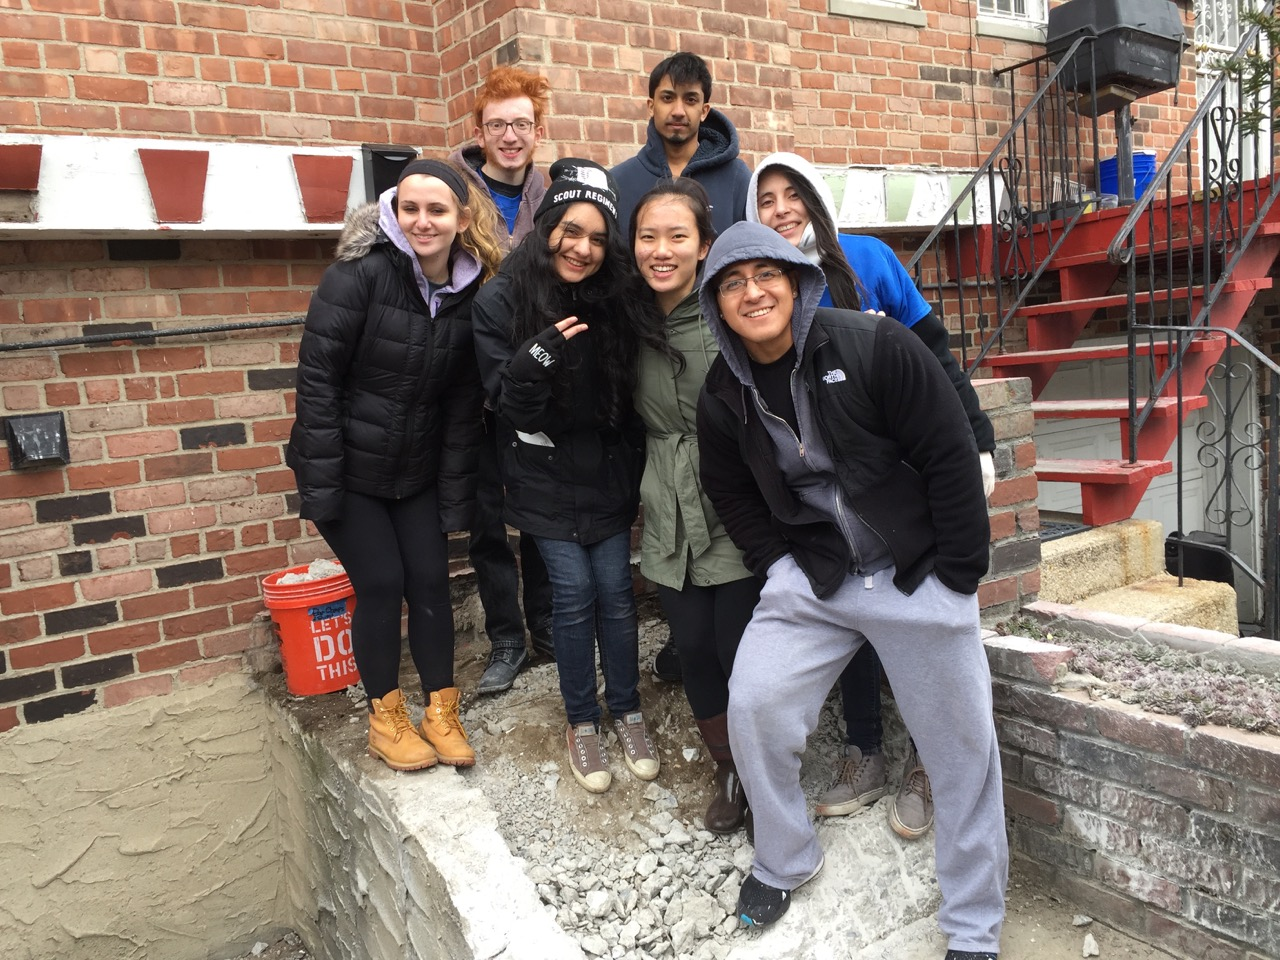 Macaulay community service day 4/1/2017